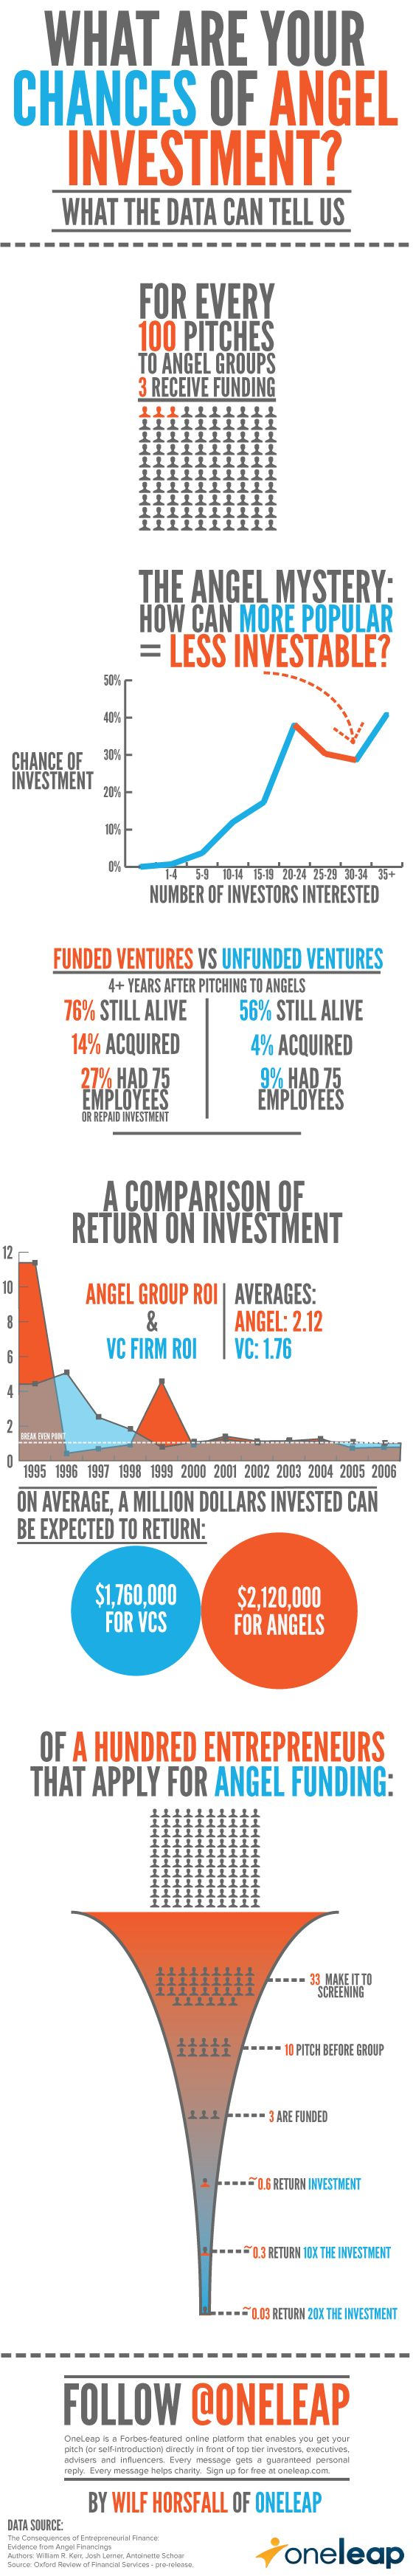 your chances of Angel investment?